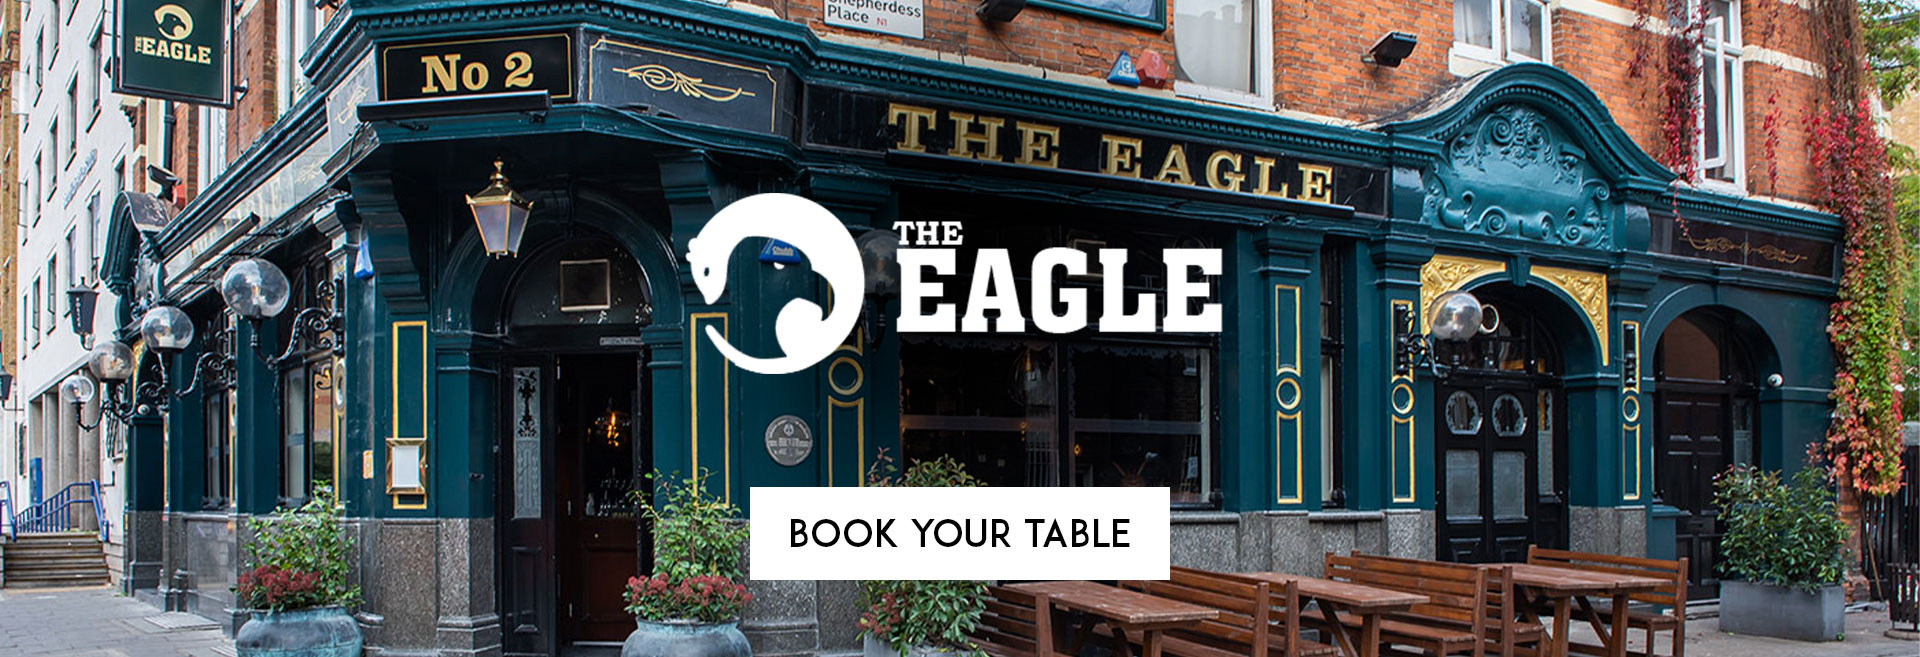 Book Your Table The Eagle